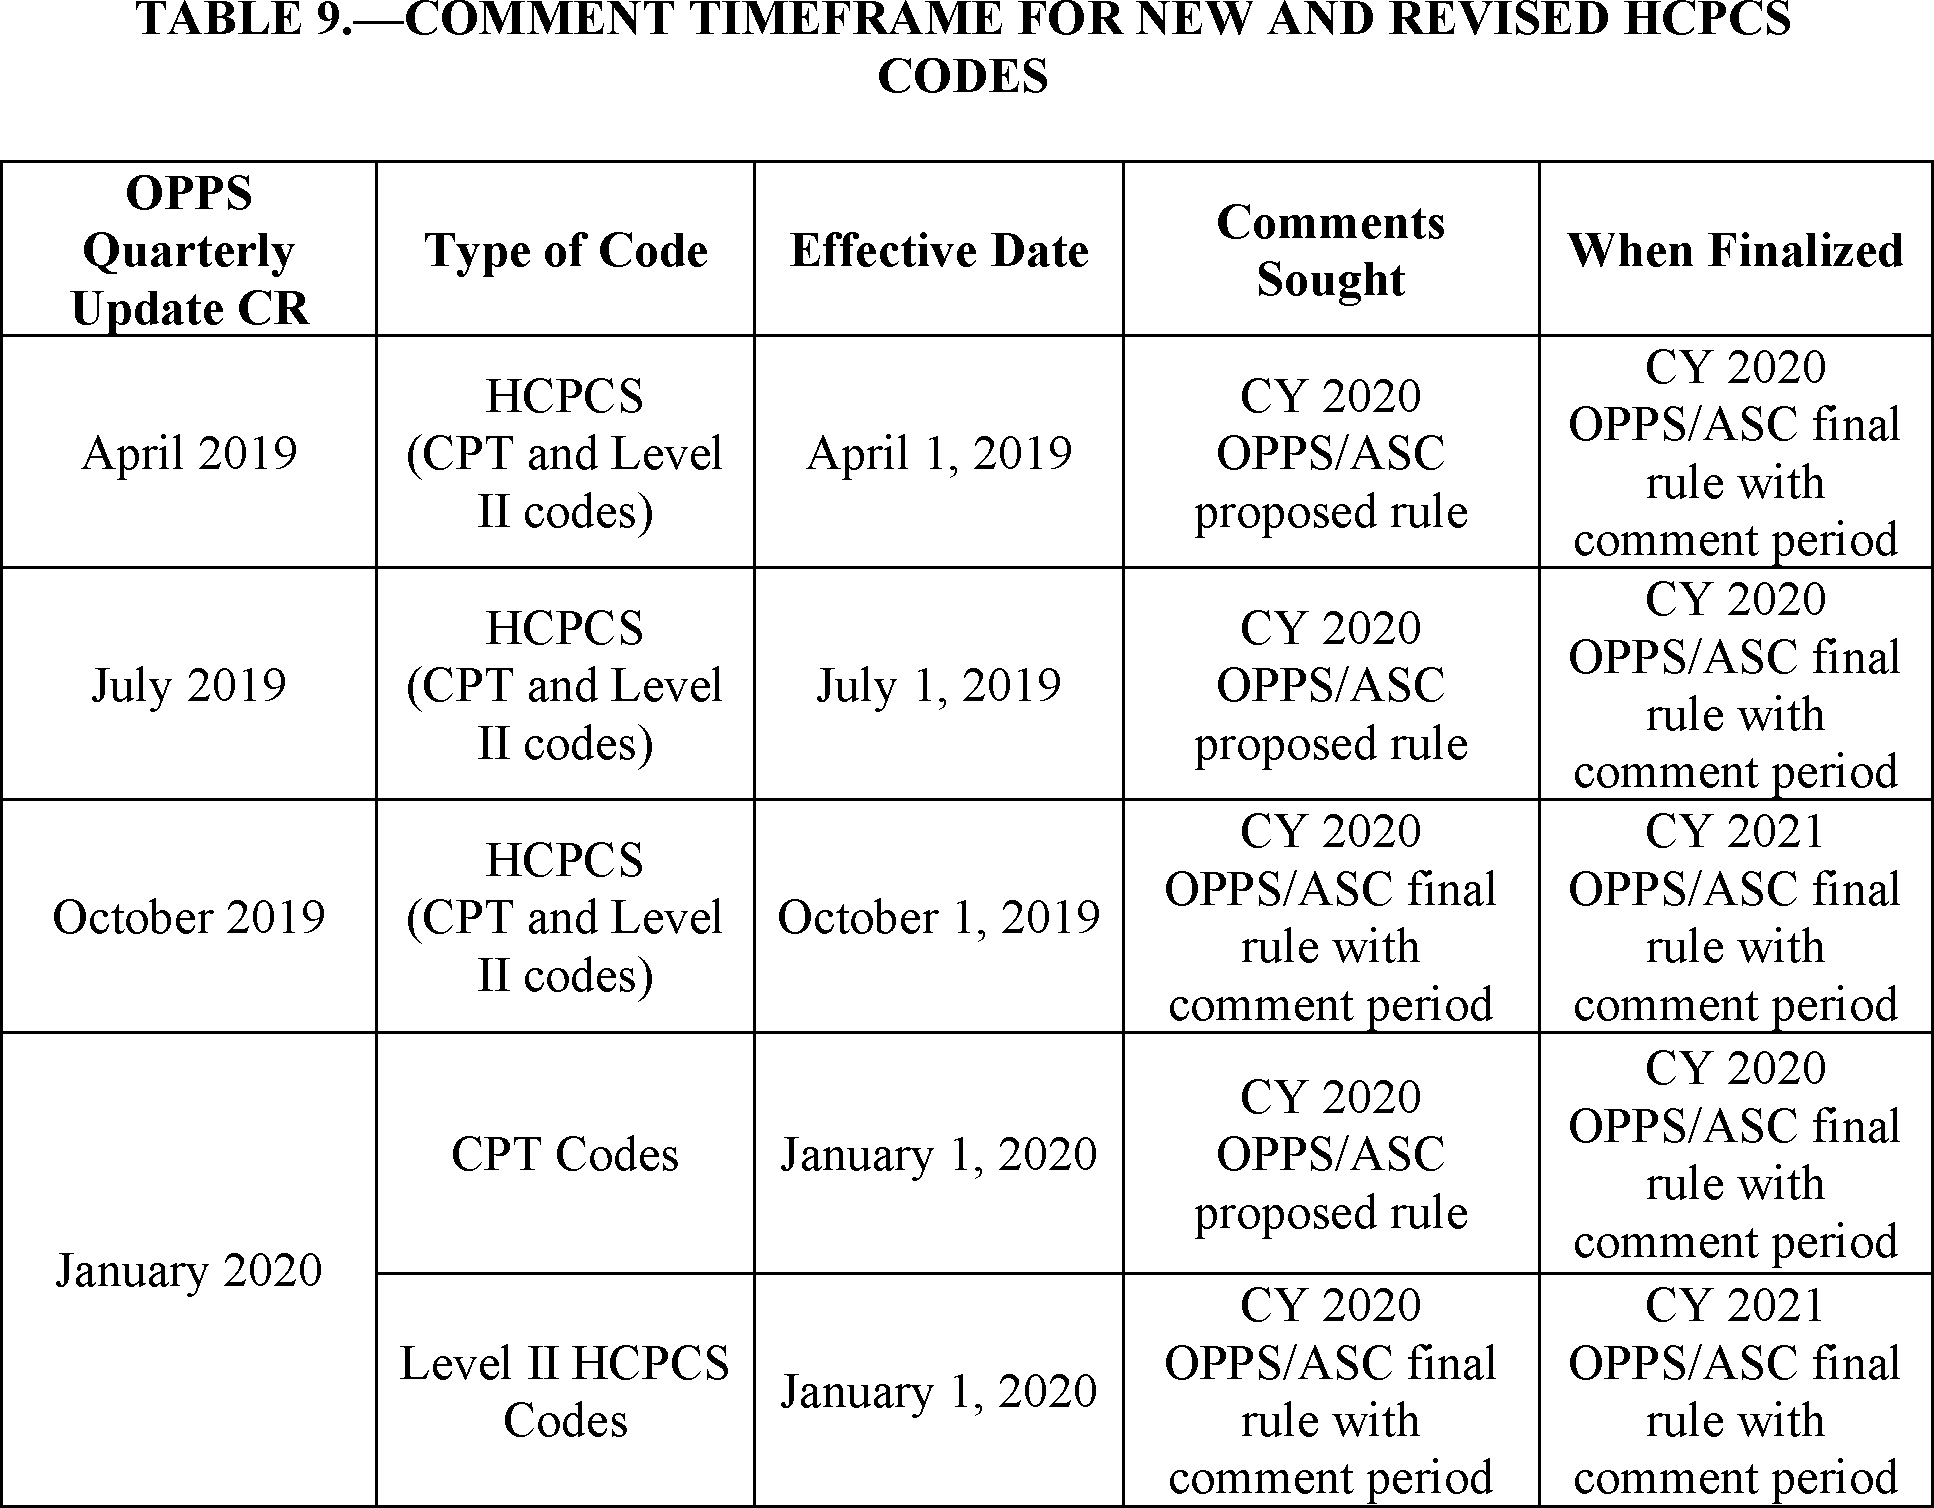 Cpt Modifiers List 2020.Federal Register Medicare Program Proposed Changes To